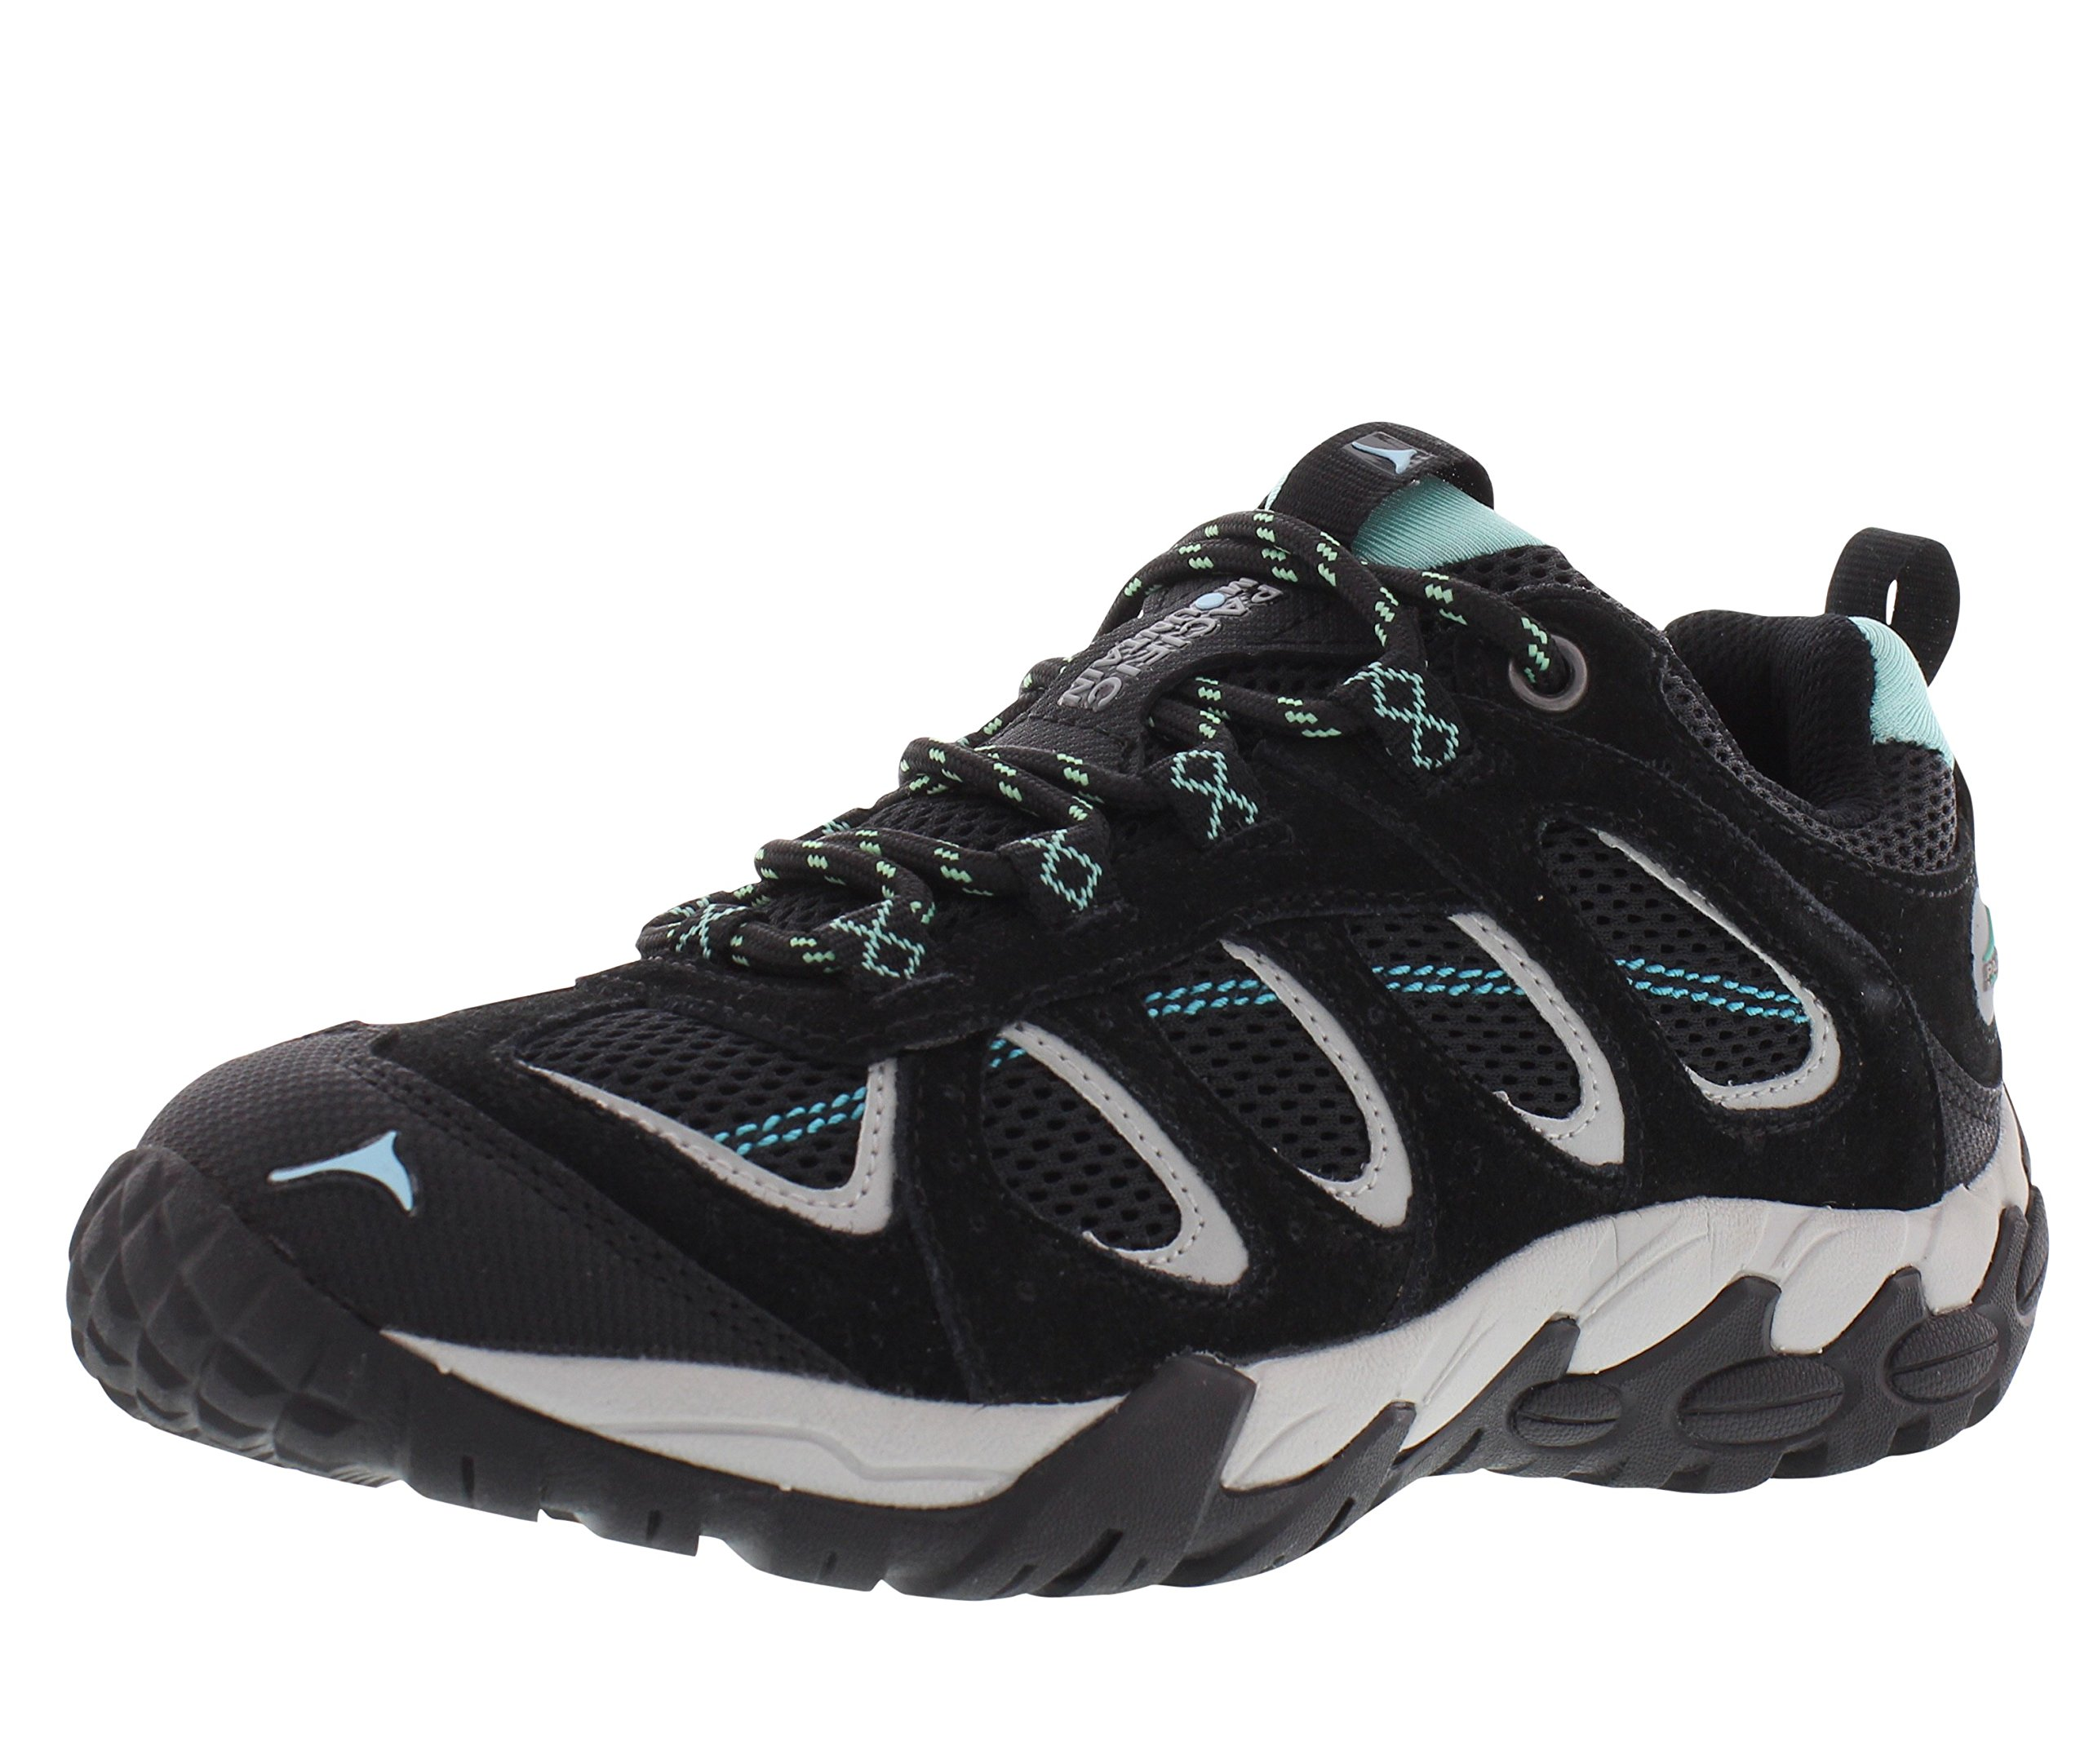 Pacific Mountain Cairn Women's Waterproof Hiking Backpacking Low-Cut Grey/Black/Turquoise Boots Size 10 by Pacific Mountain